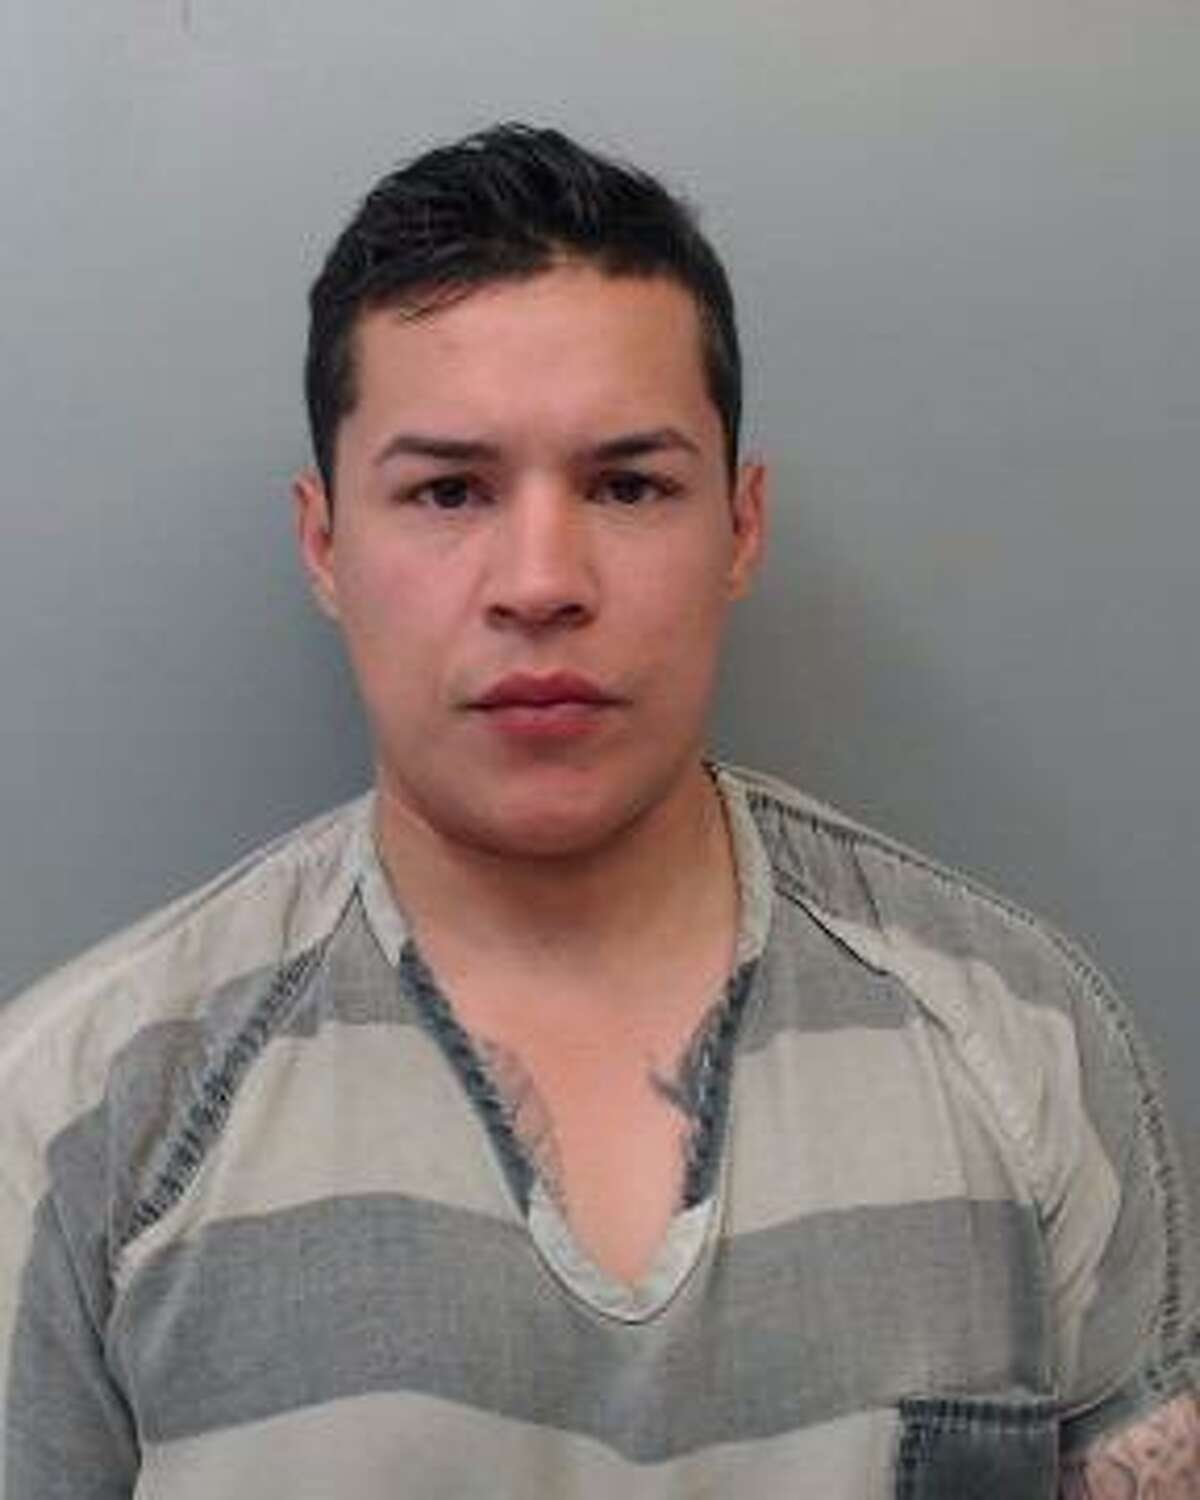 Norberto Lazaro De La Garza IV, 31, was placed under arrest for suspicion of driving while under the influence.